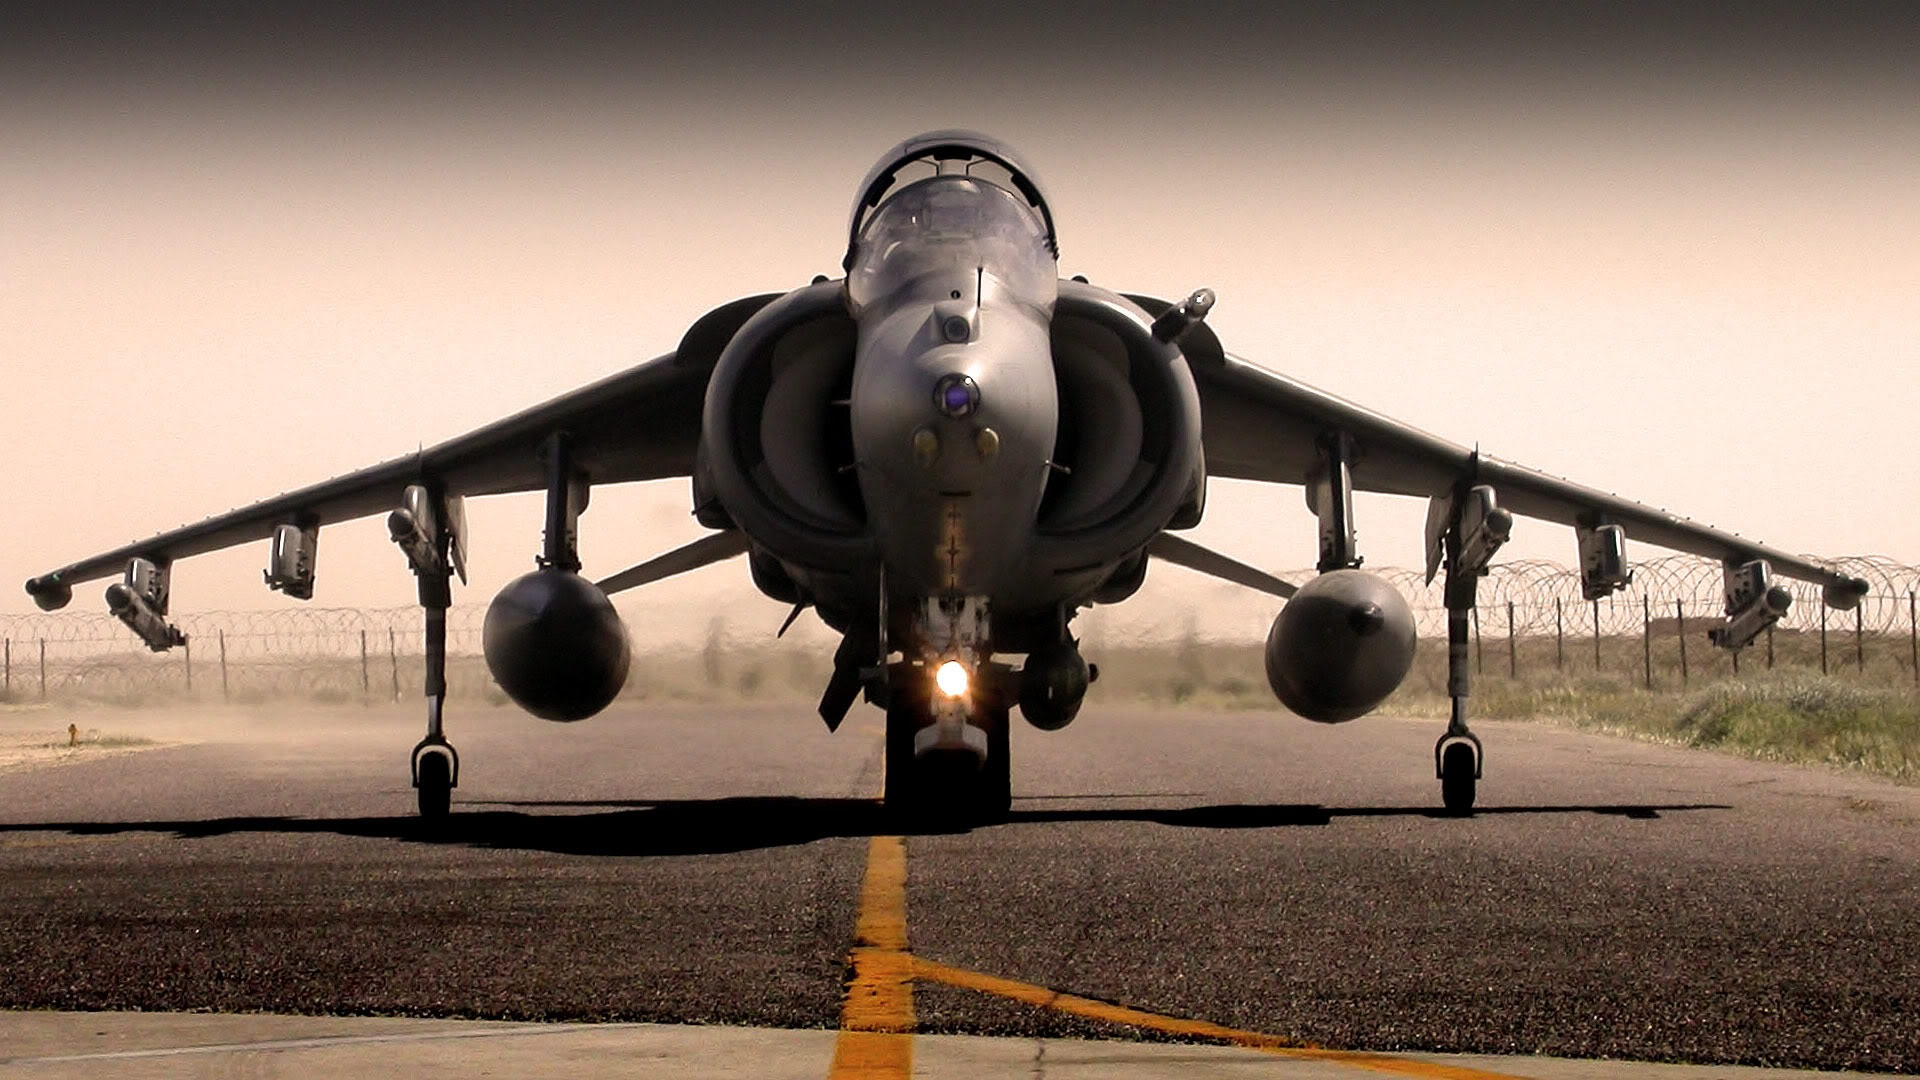 Awesome Aircraft Military Wallpaper Best Wallpaper with 1920x1080 1920x1080